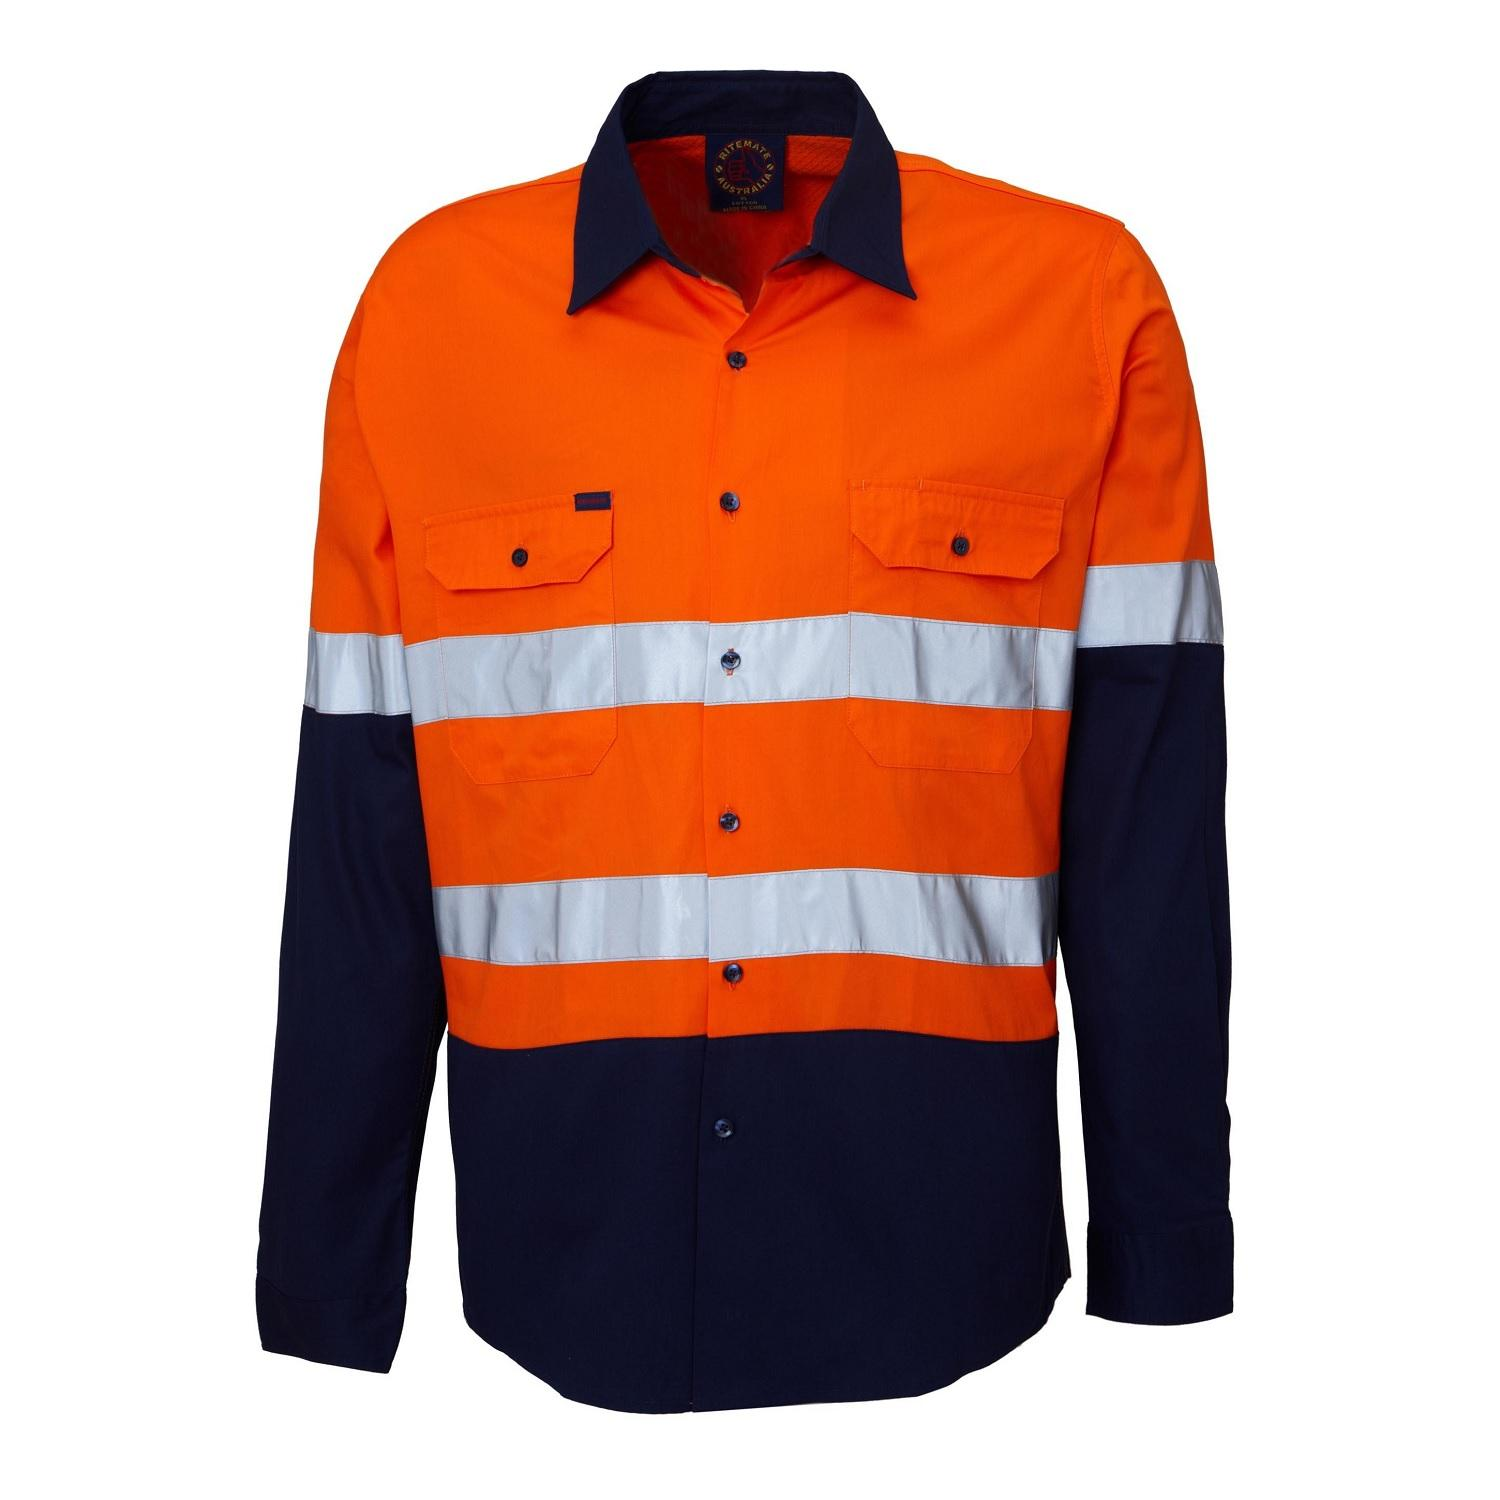 RITEMATE RM107V2R - Long Sleeve Light Weight Vented Drill Shirt